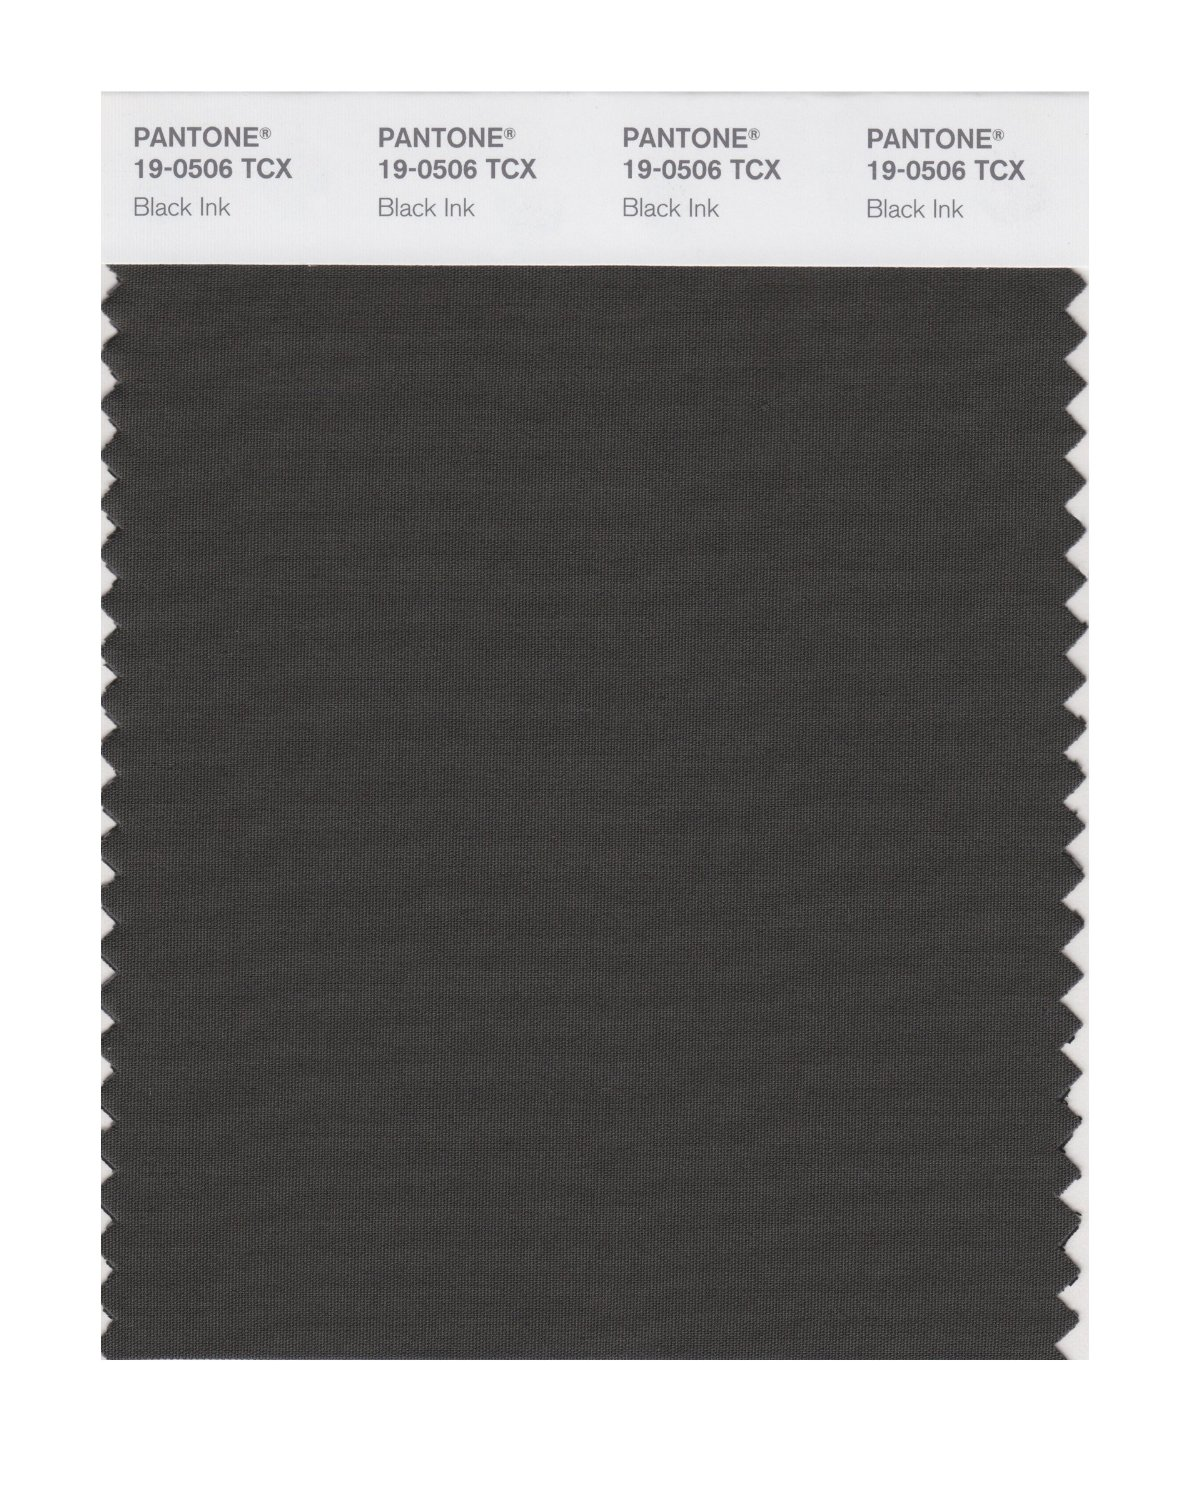 Pantone Smart Swatch 19-0506 Black Ink